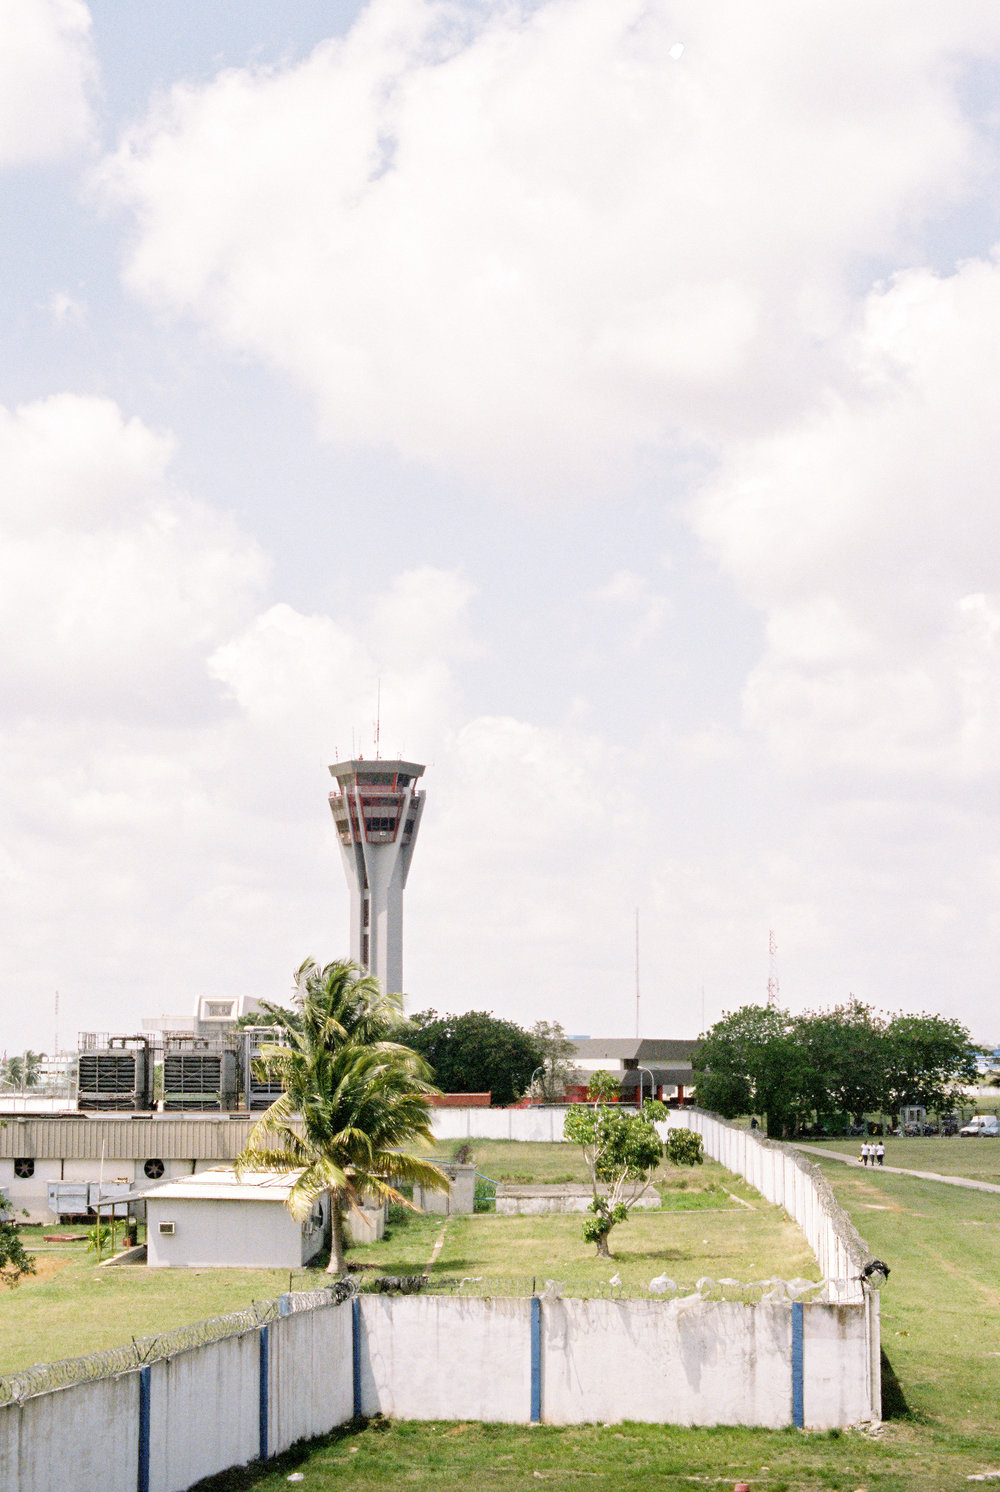 The Havana Airport